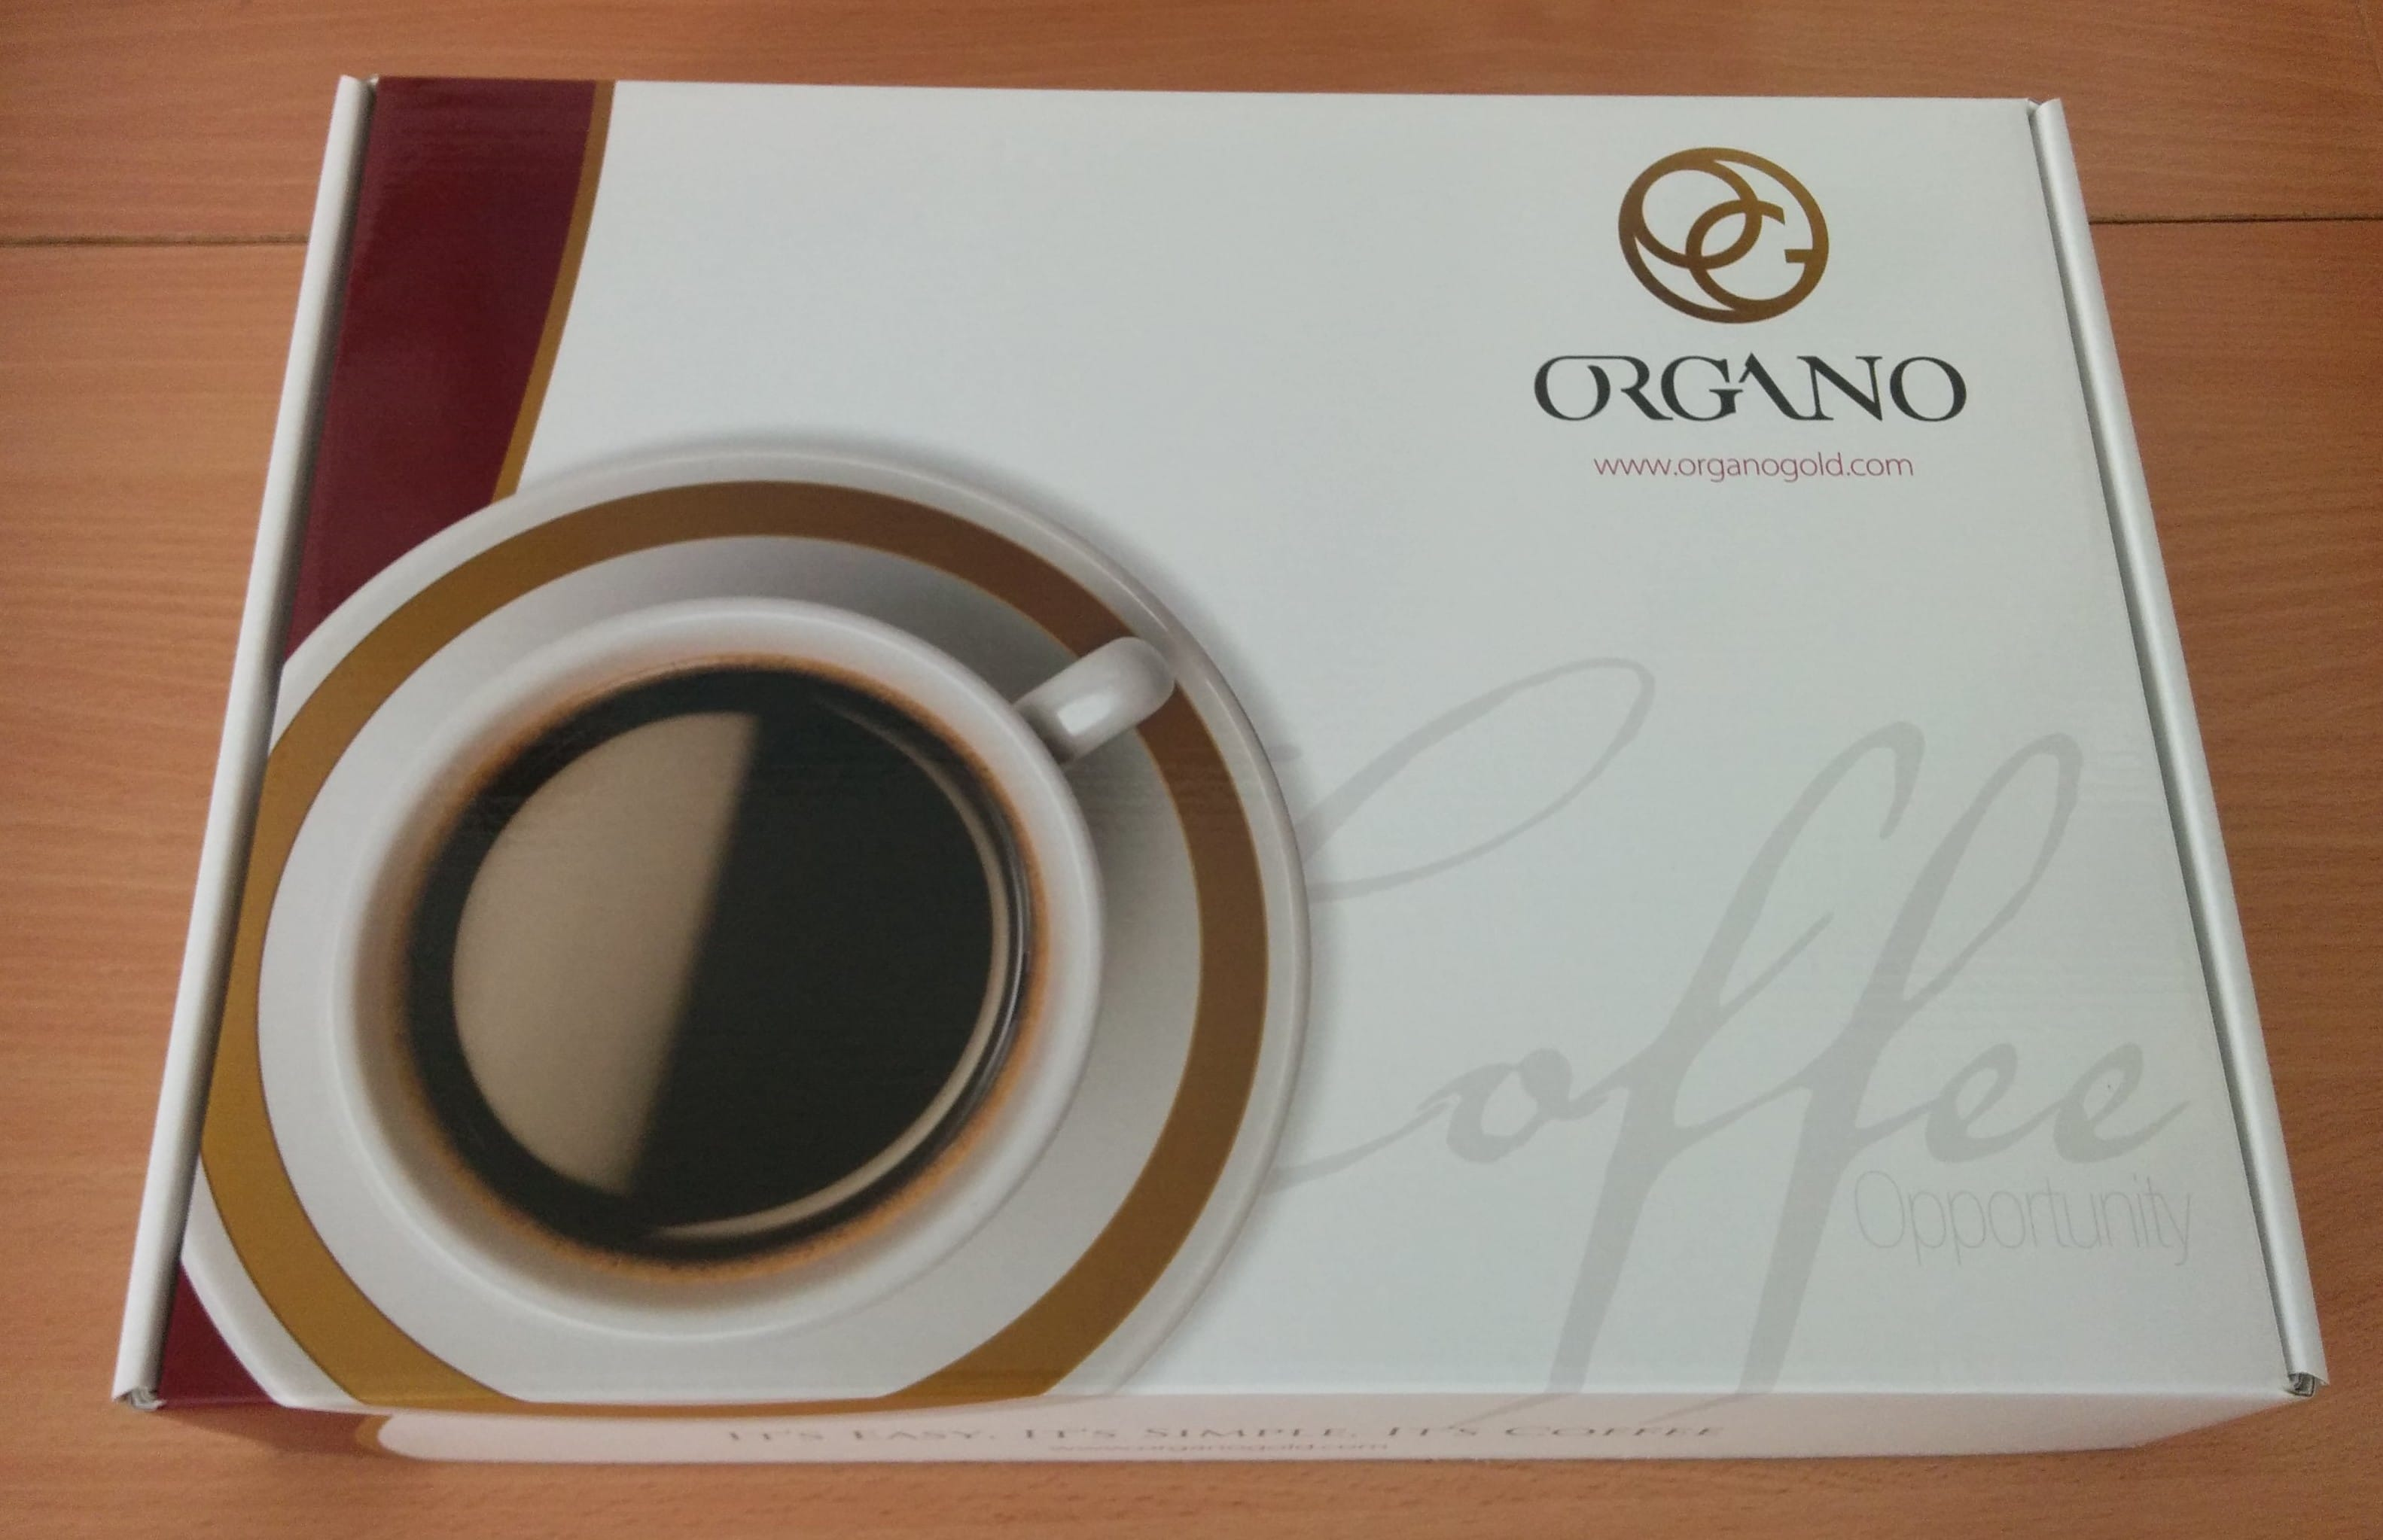 Organo Gold distributor kit